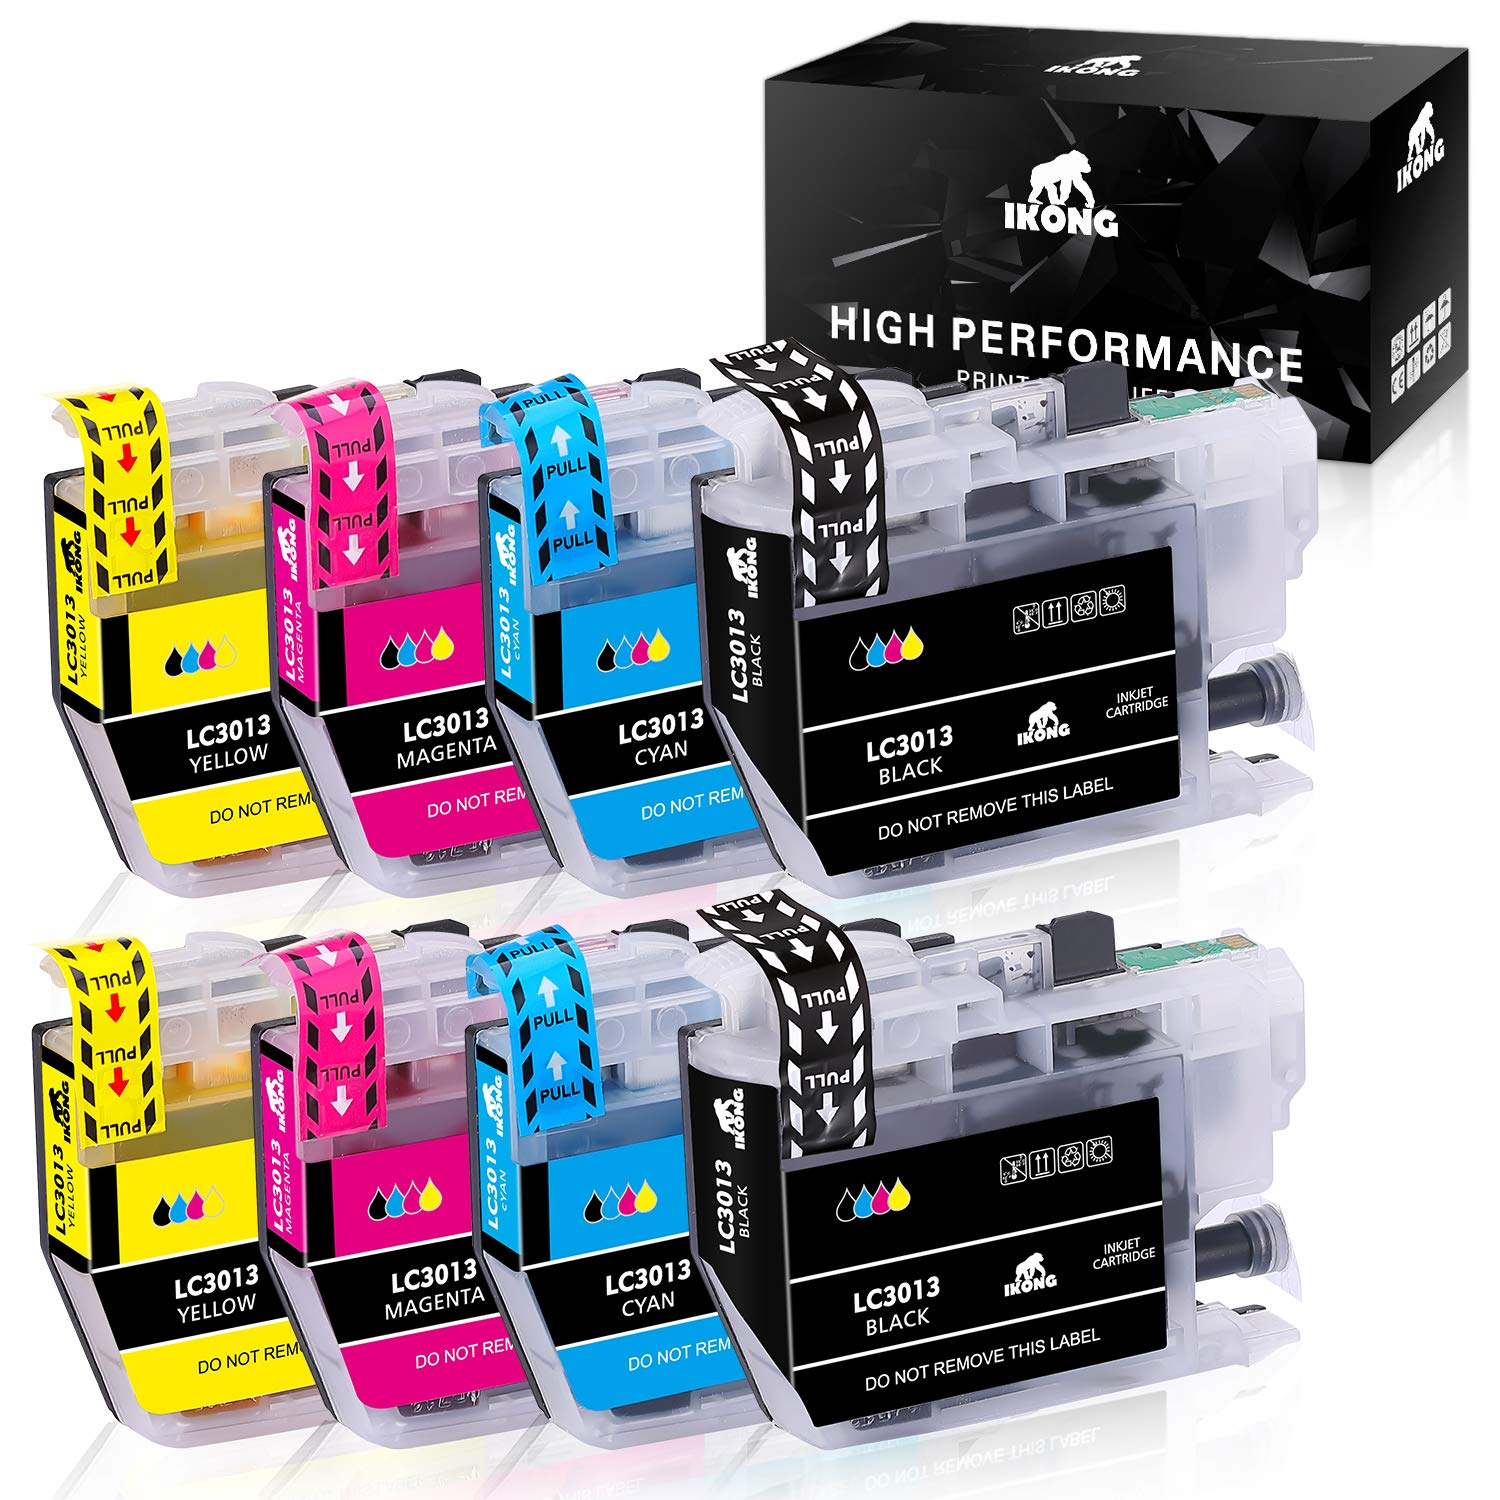 IKONG Compatible Replacement for Brother LC3013 LC3011 Ink Cartridges High Yield for Brother MFC-J491DW MFC-J895DW MFC-J690DW MFC-J497DW Printer (2 Black, 2 Cyan, 2 Magenta, 2 Yellow, 8-Pack)